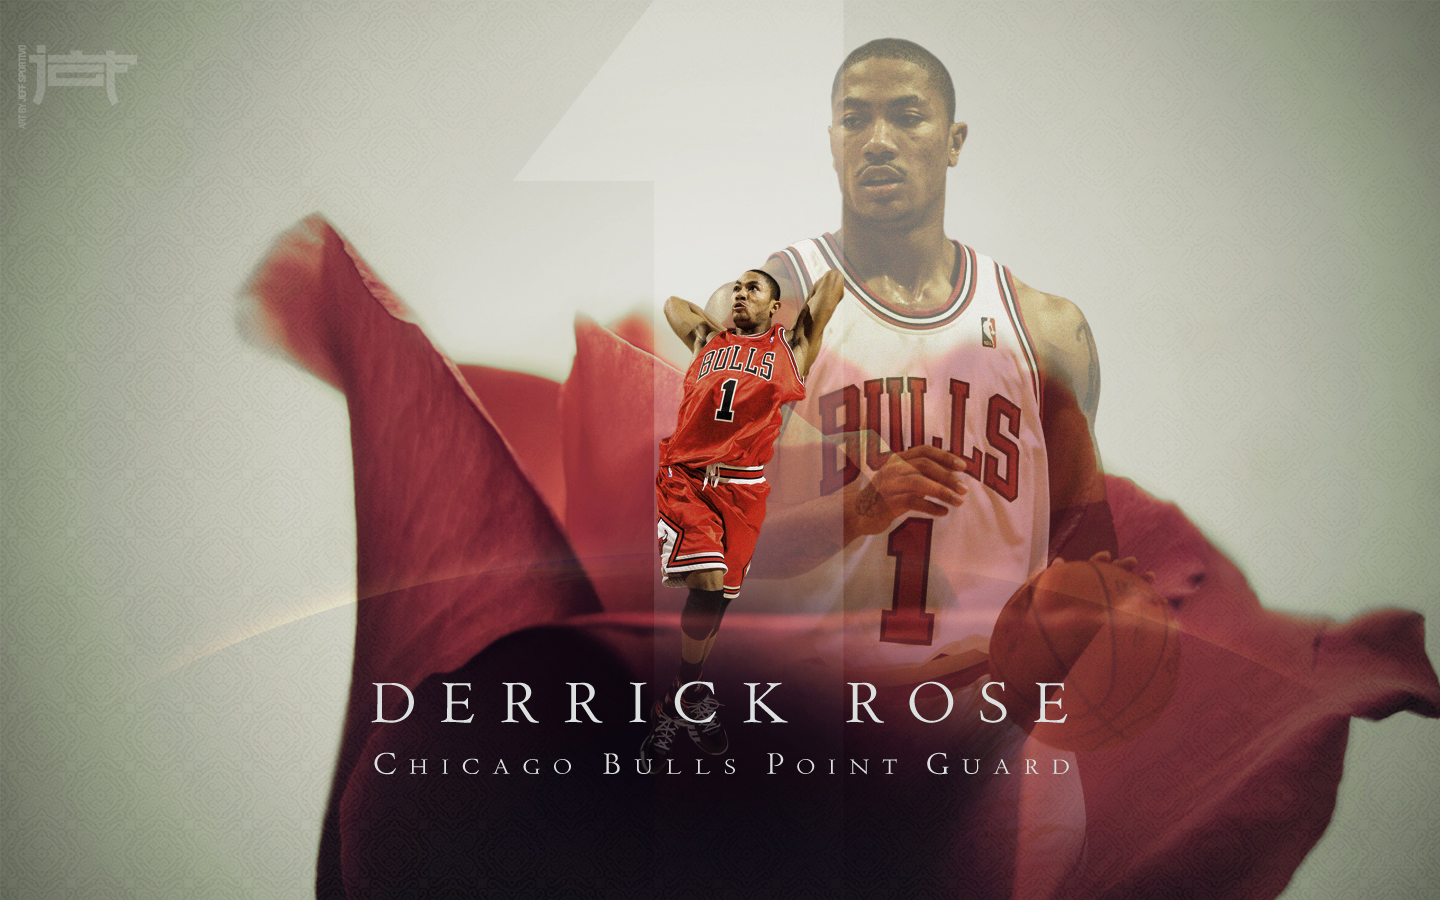 chicago bulls derrick rose wallpaper   ALOjamiento de IMgenes 1440x900